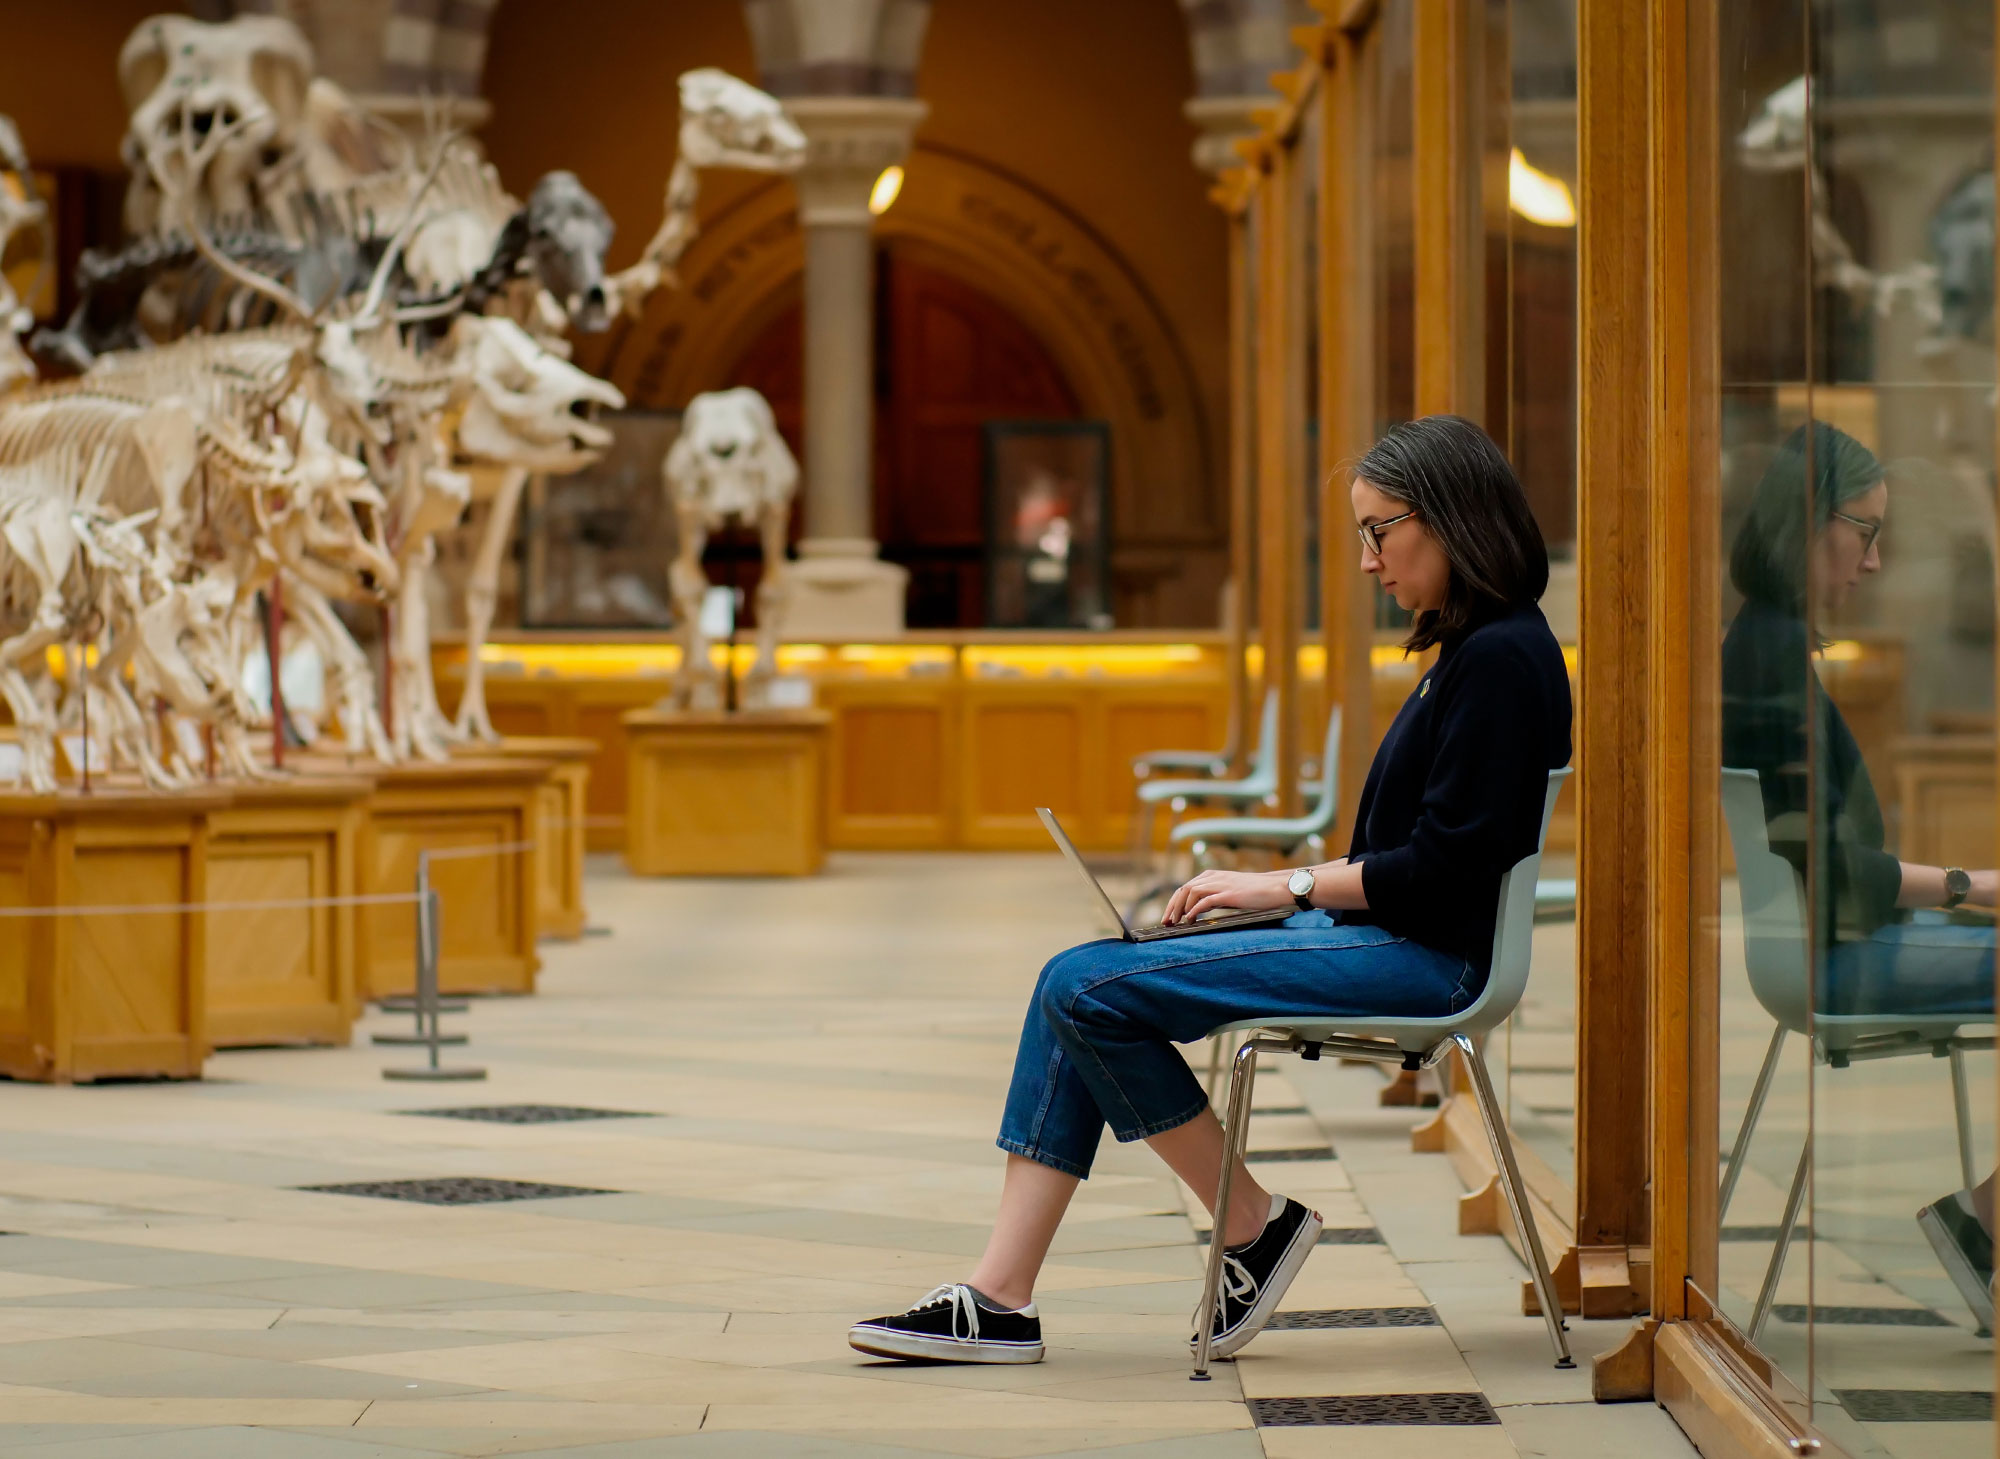 A woman working on a laptop at a natural history museum with animal skeletons in the background.